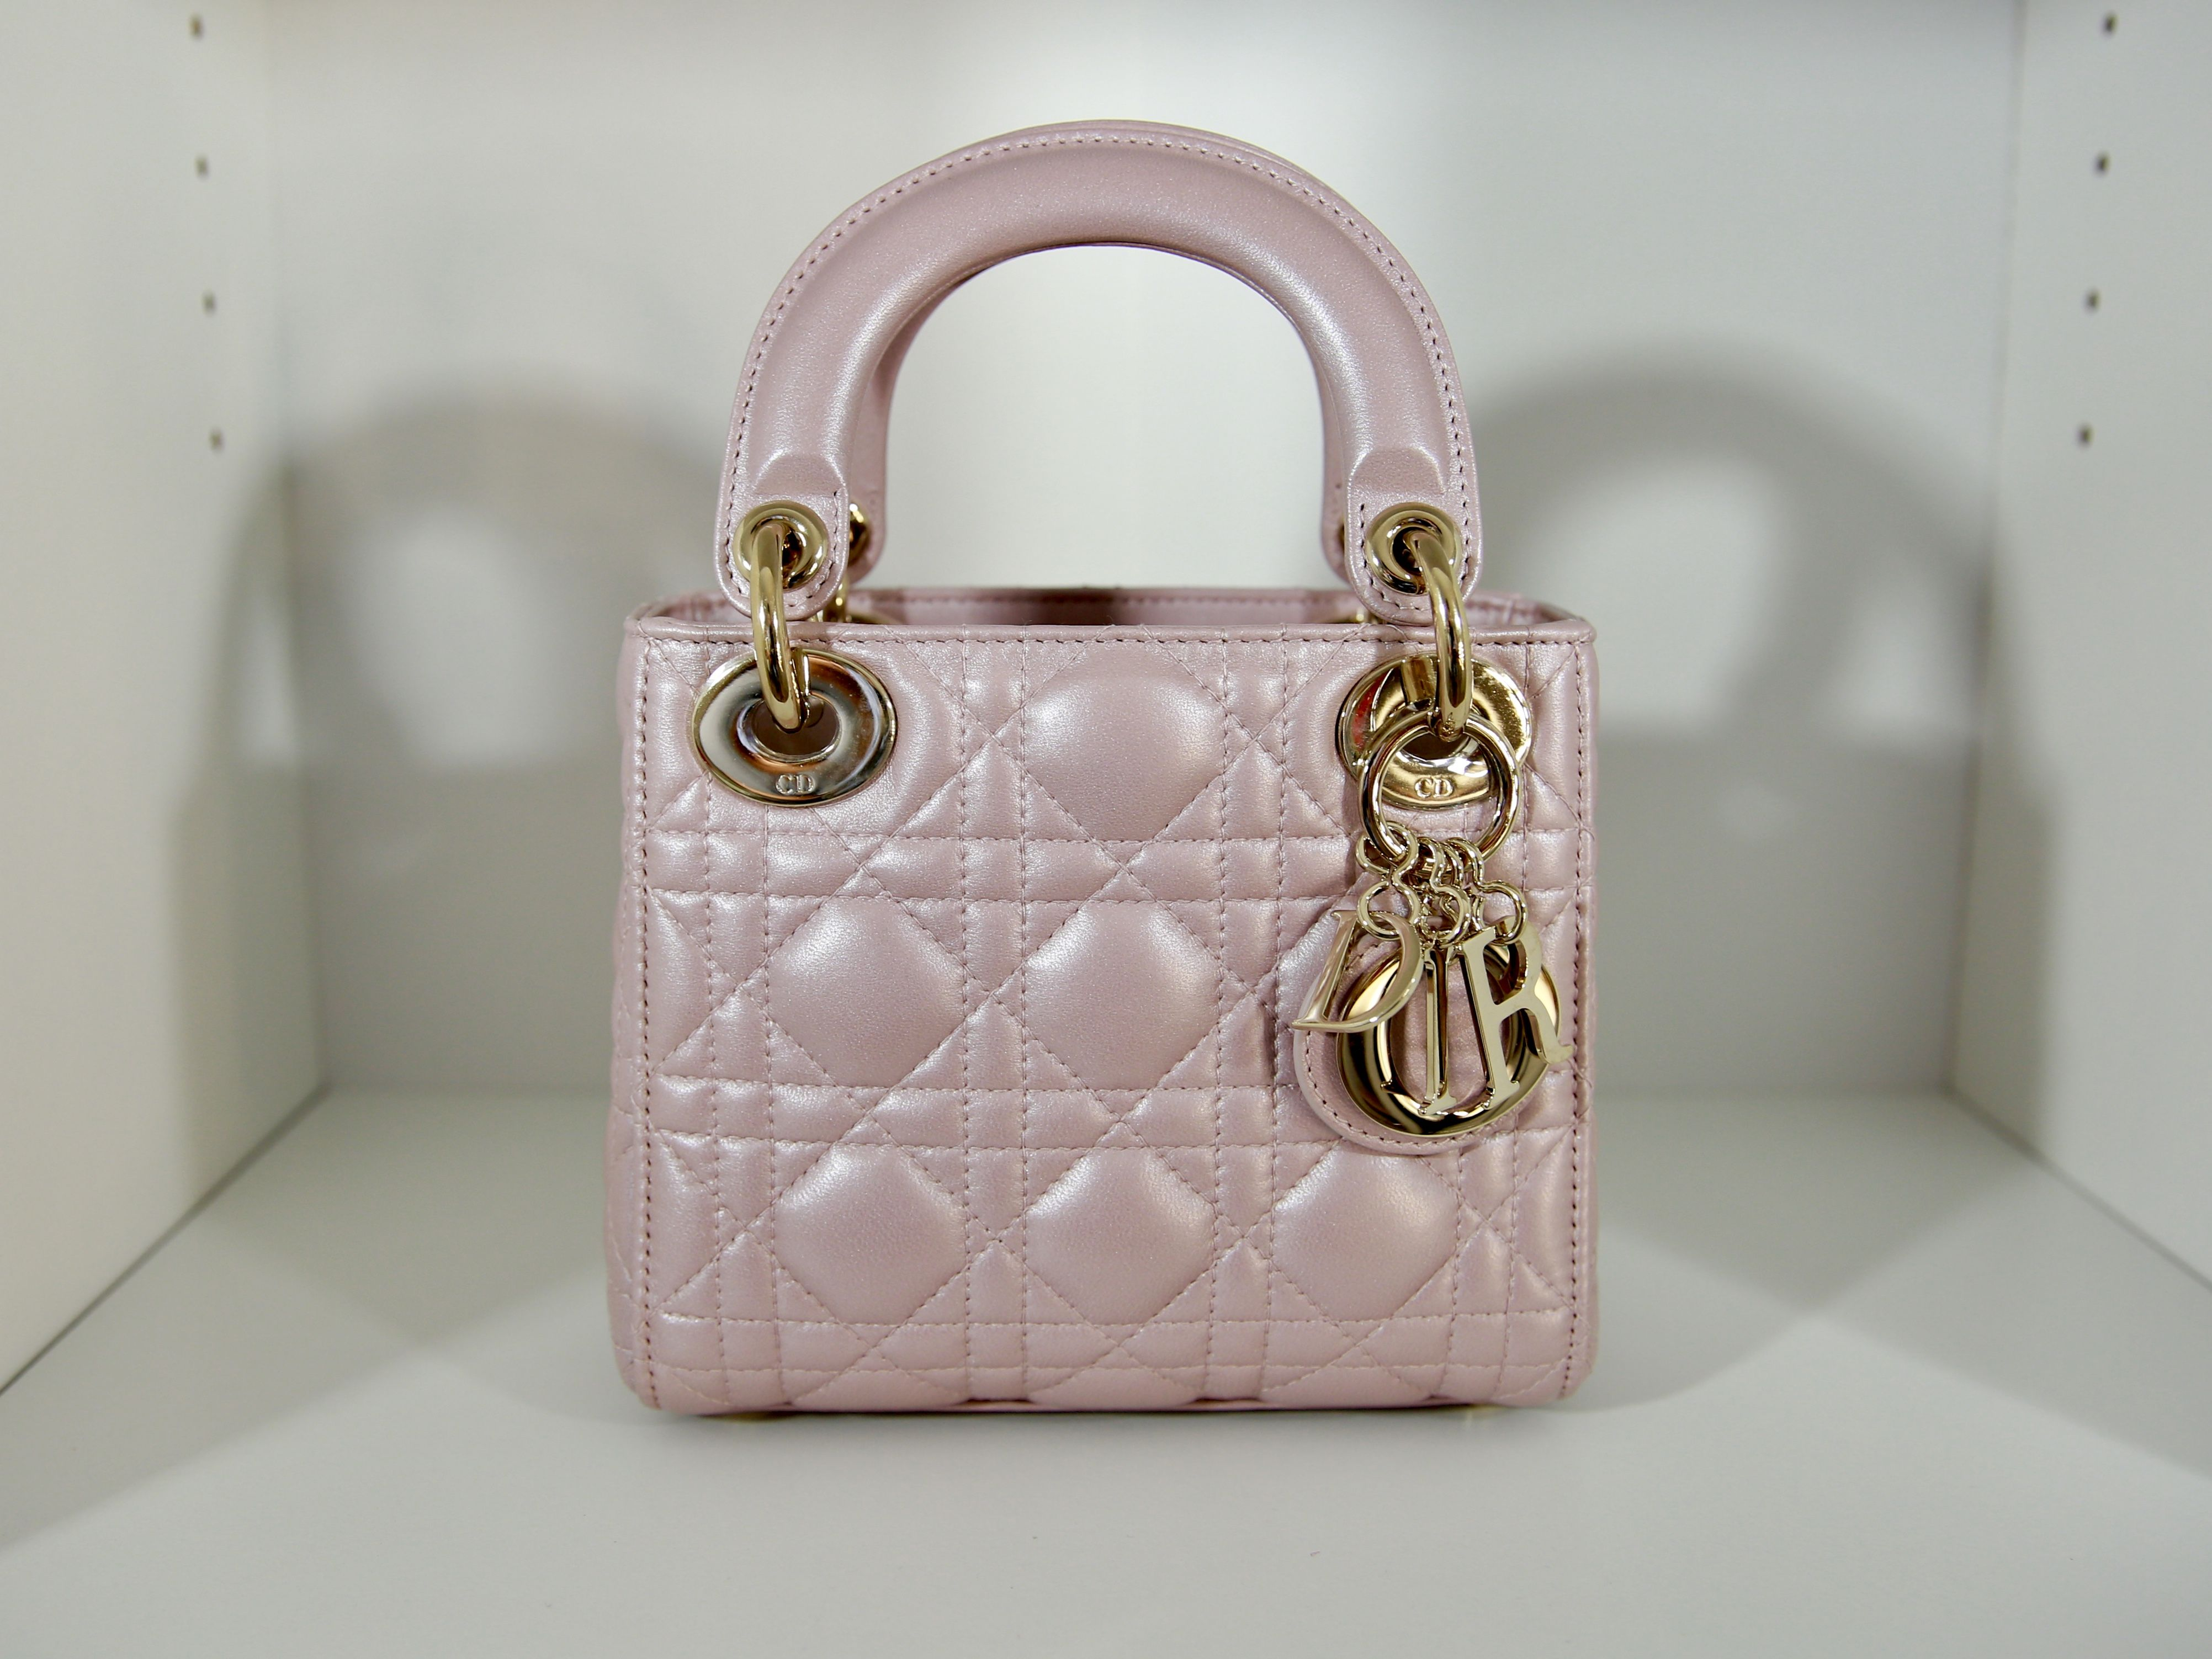 1bfe0baa71f8 Lady Dior Mini in pearly lambskin in pink rose gold color https